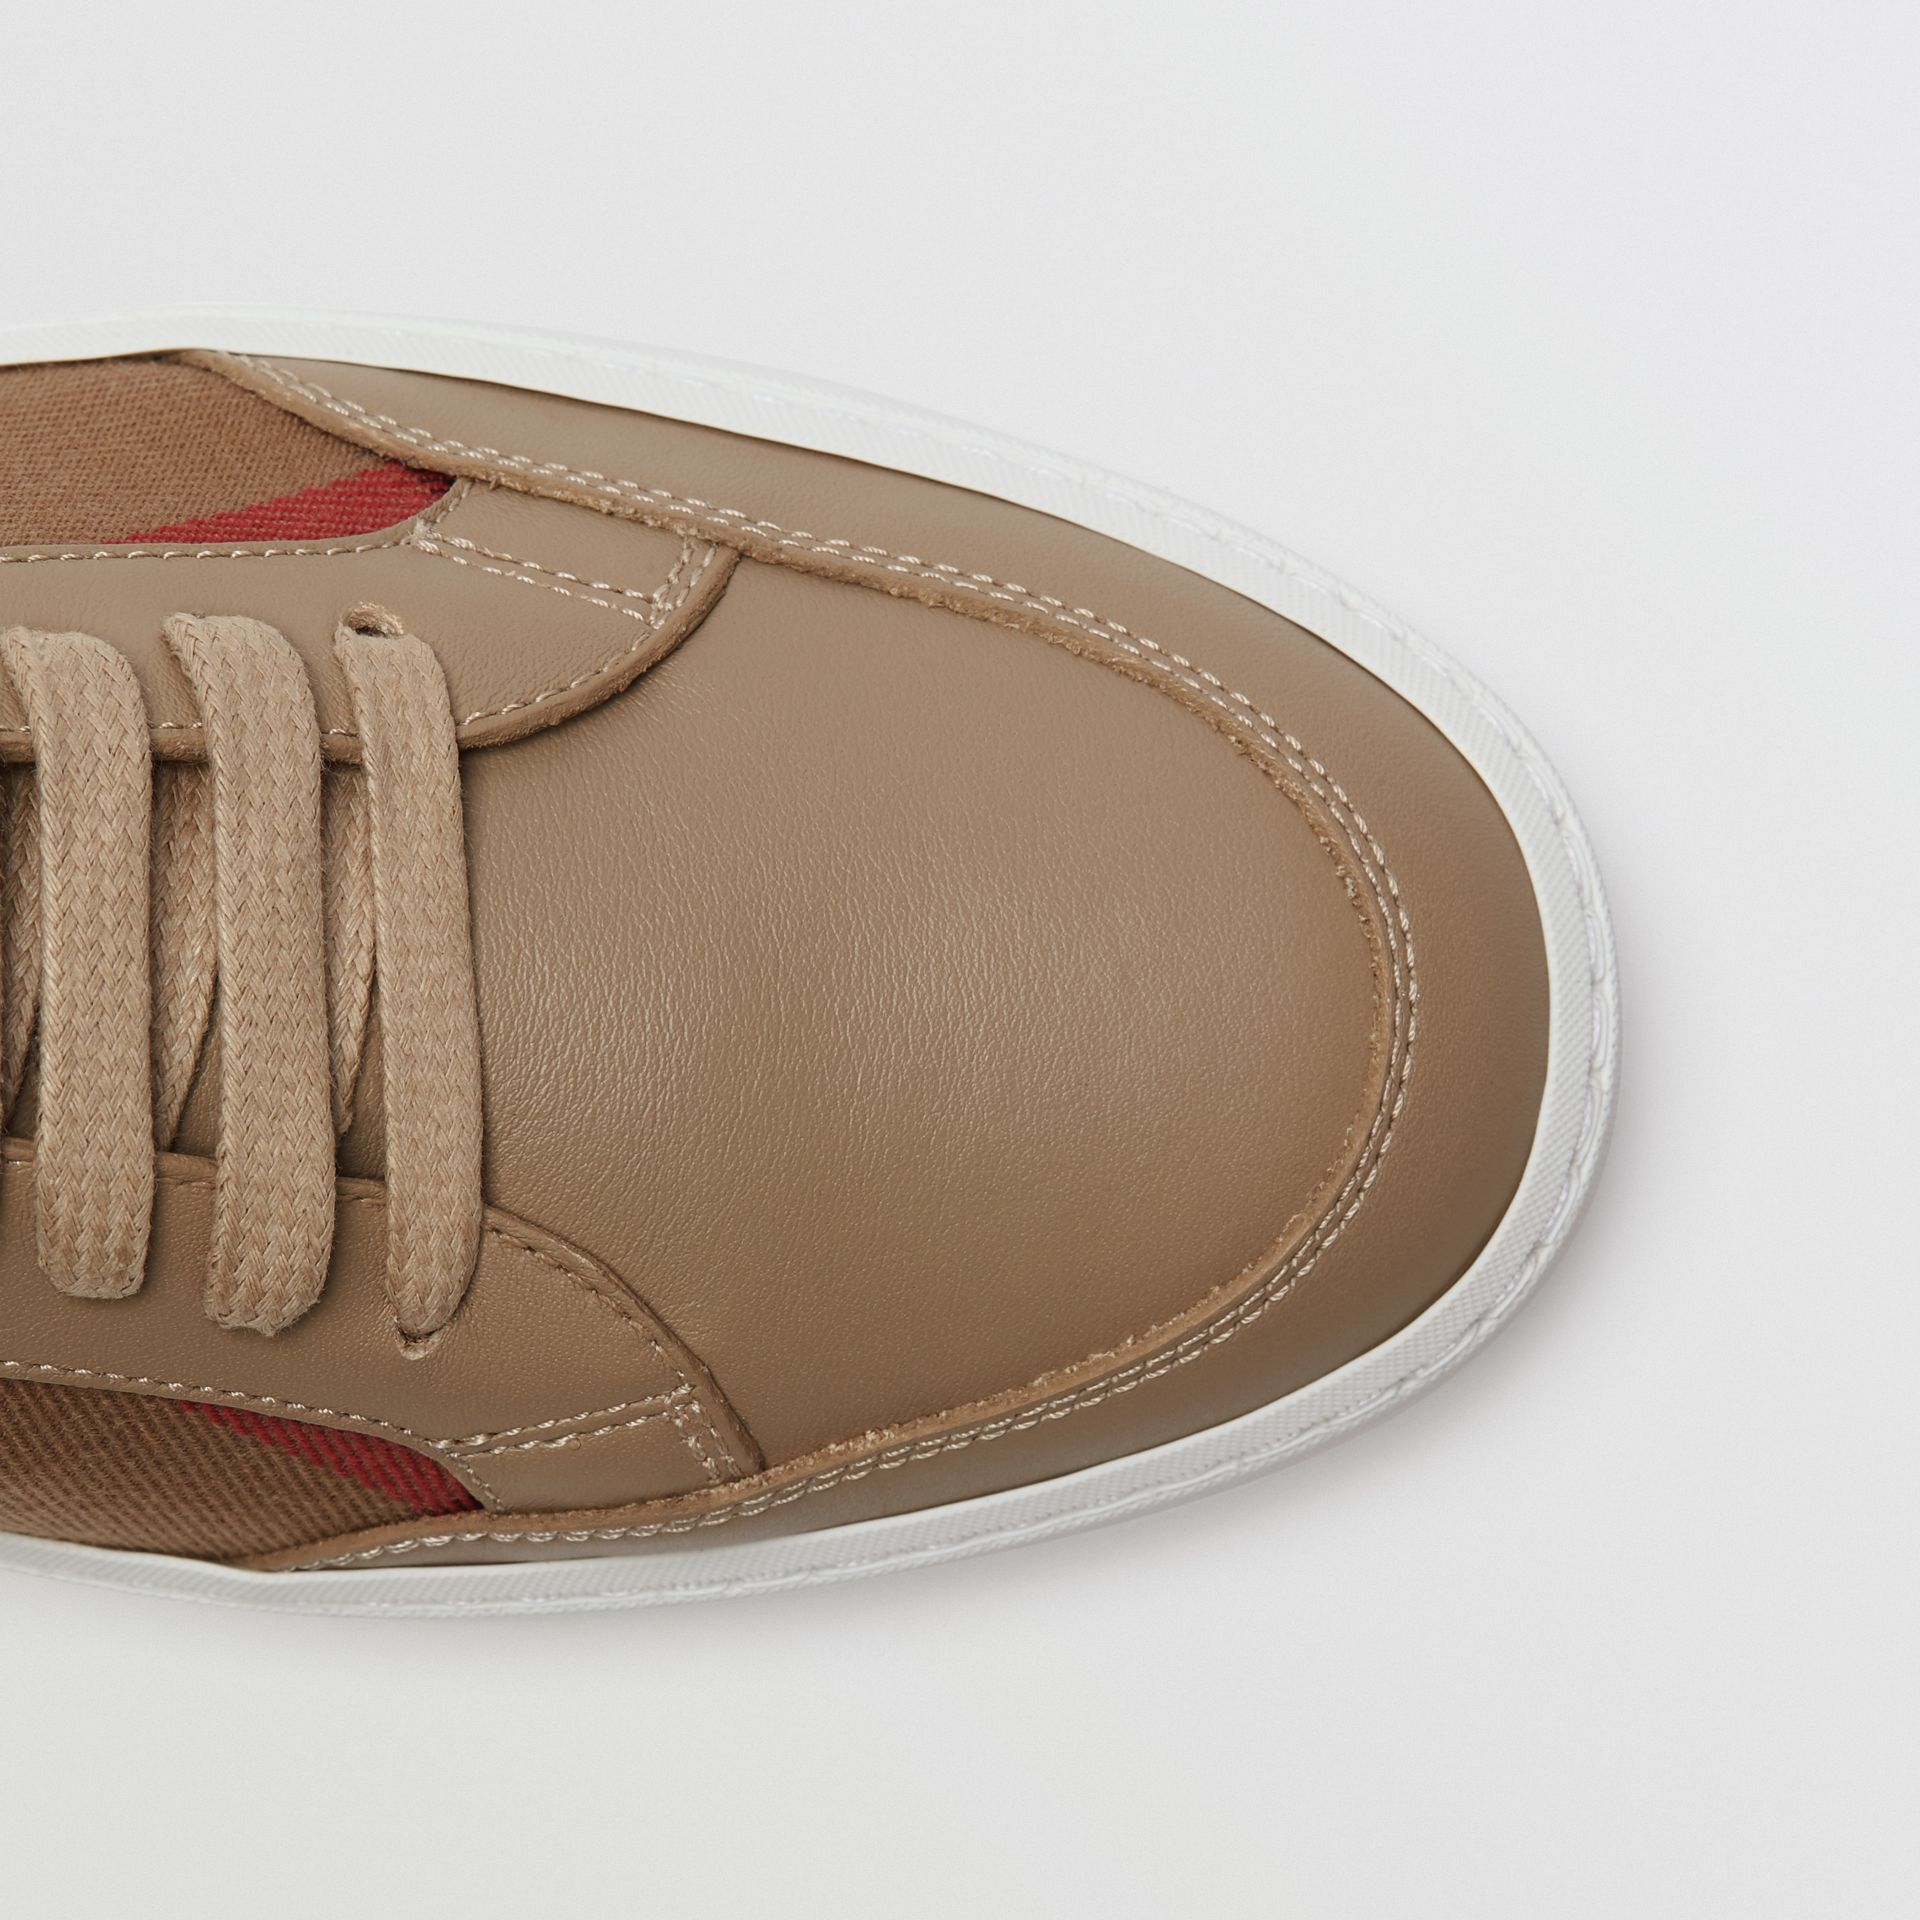 Check Detail Leather Sneakers in House Check/ Nude - Women | Burberry Singapore - gallery image 1